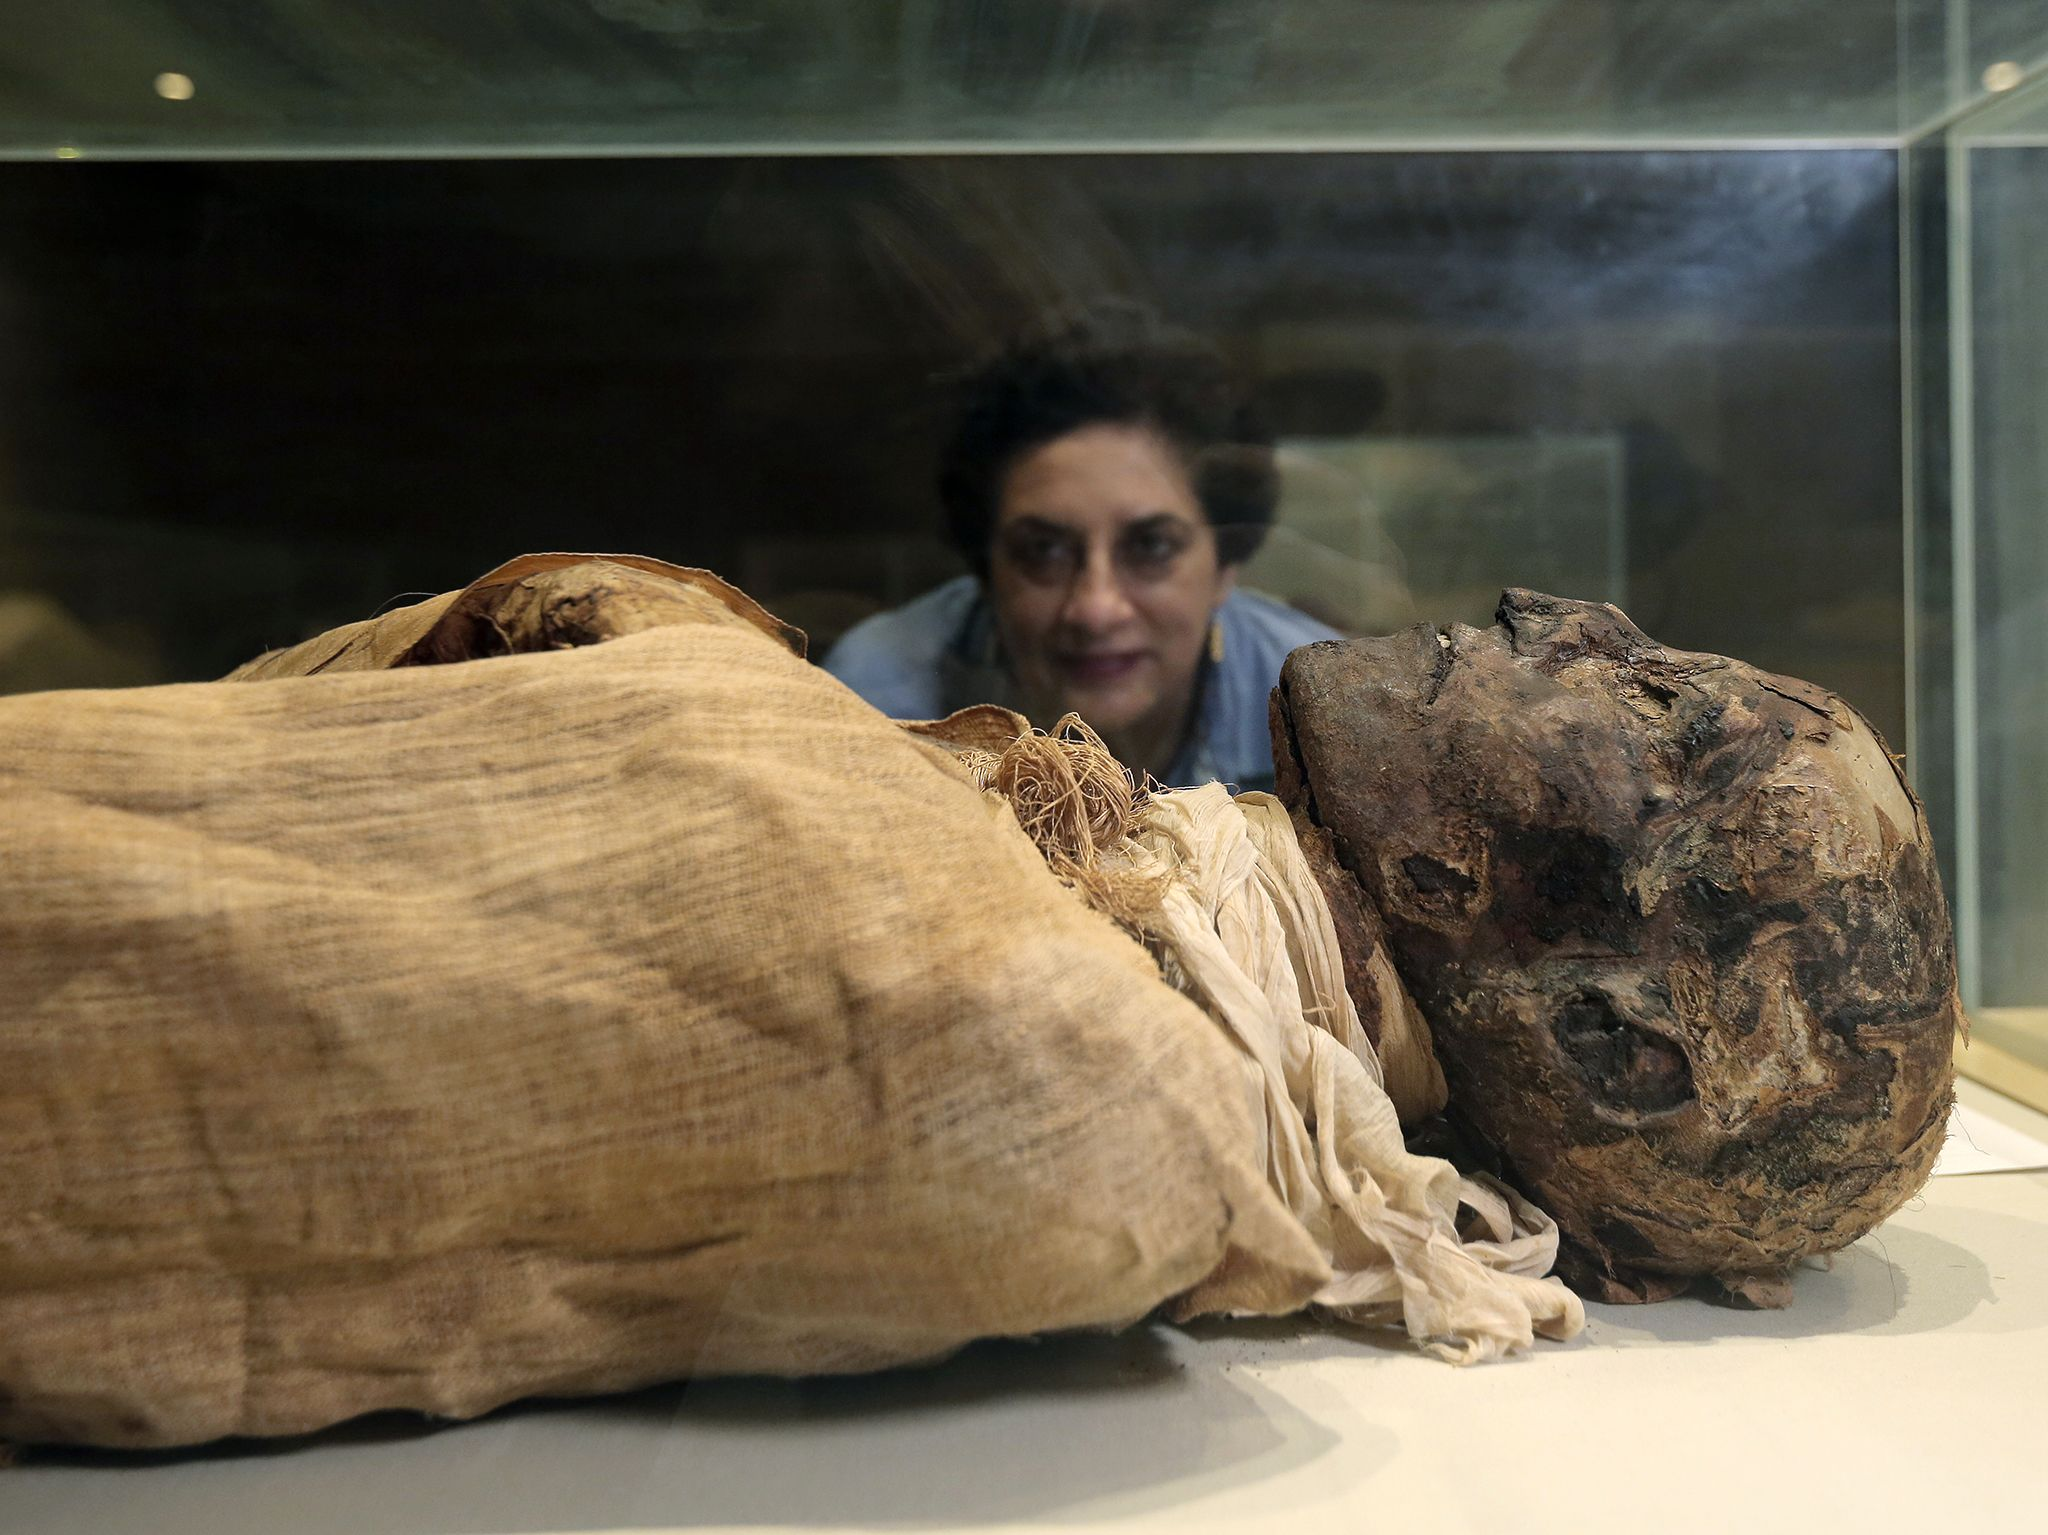 Cairo Museum, Egypt:  Salima Ikram looking at the mummy of Rameses III.  This image is from Lost... [Photo of the day - March 2019]